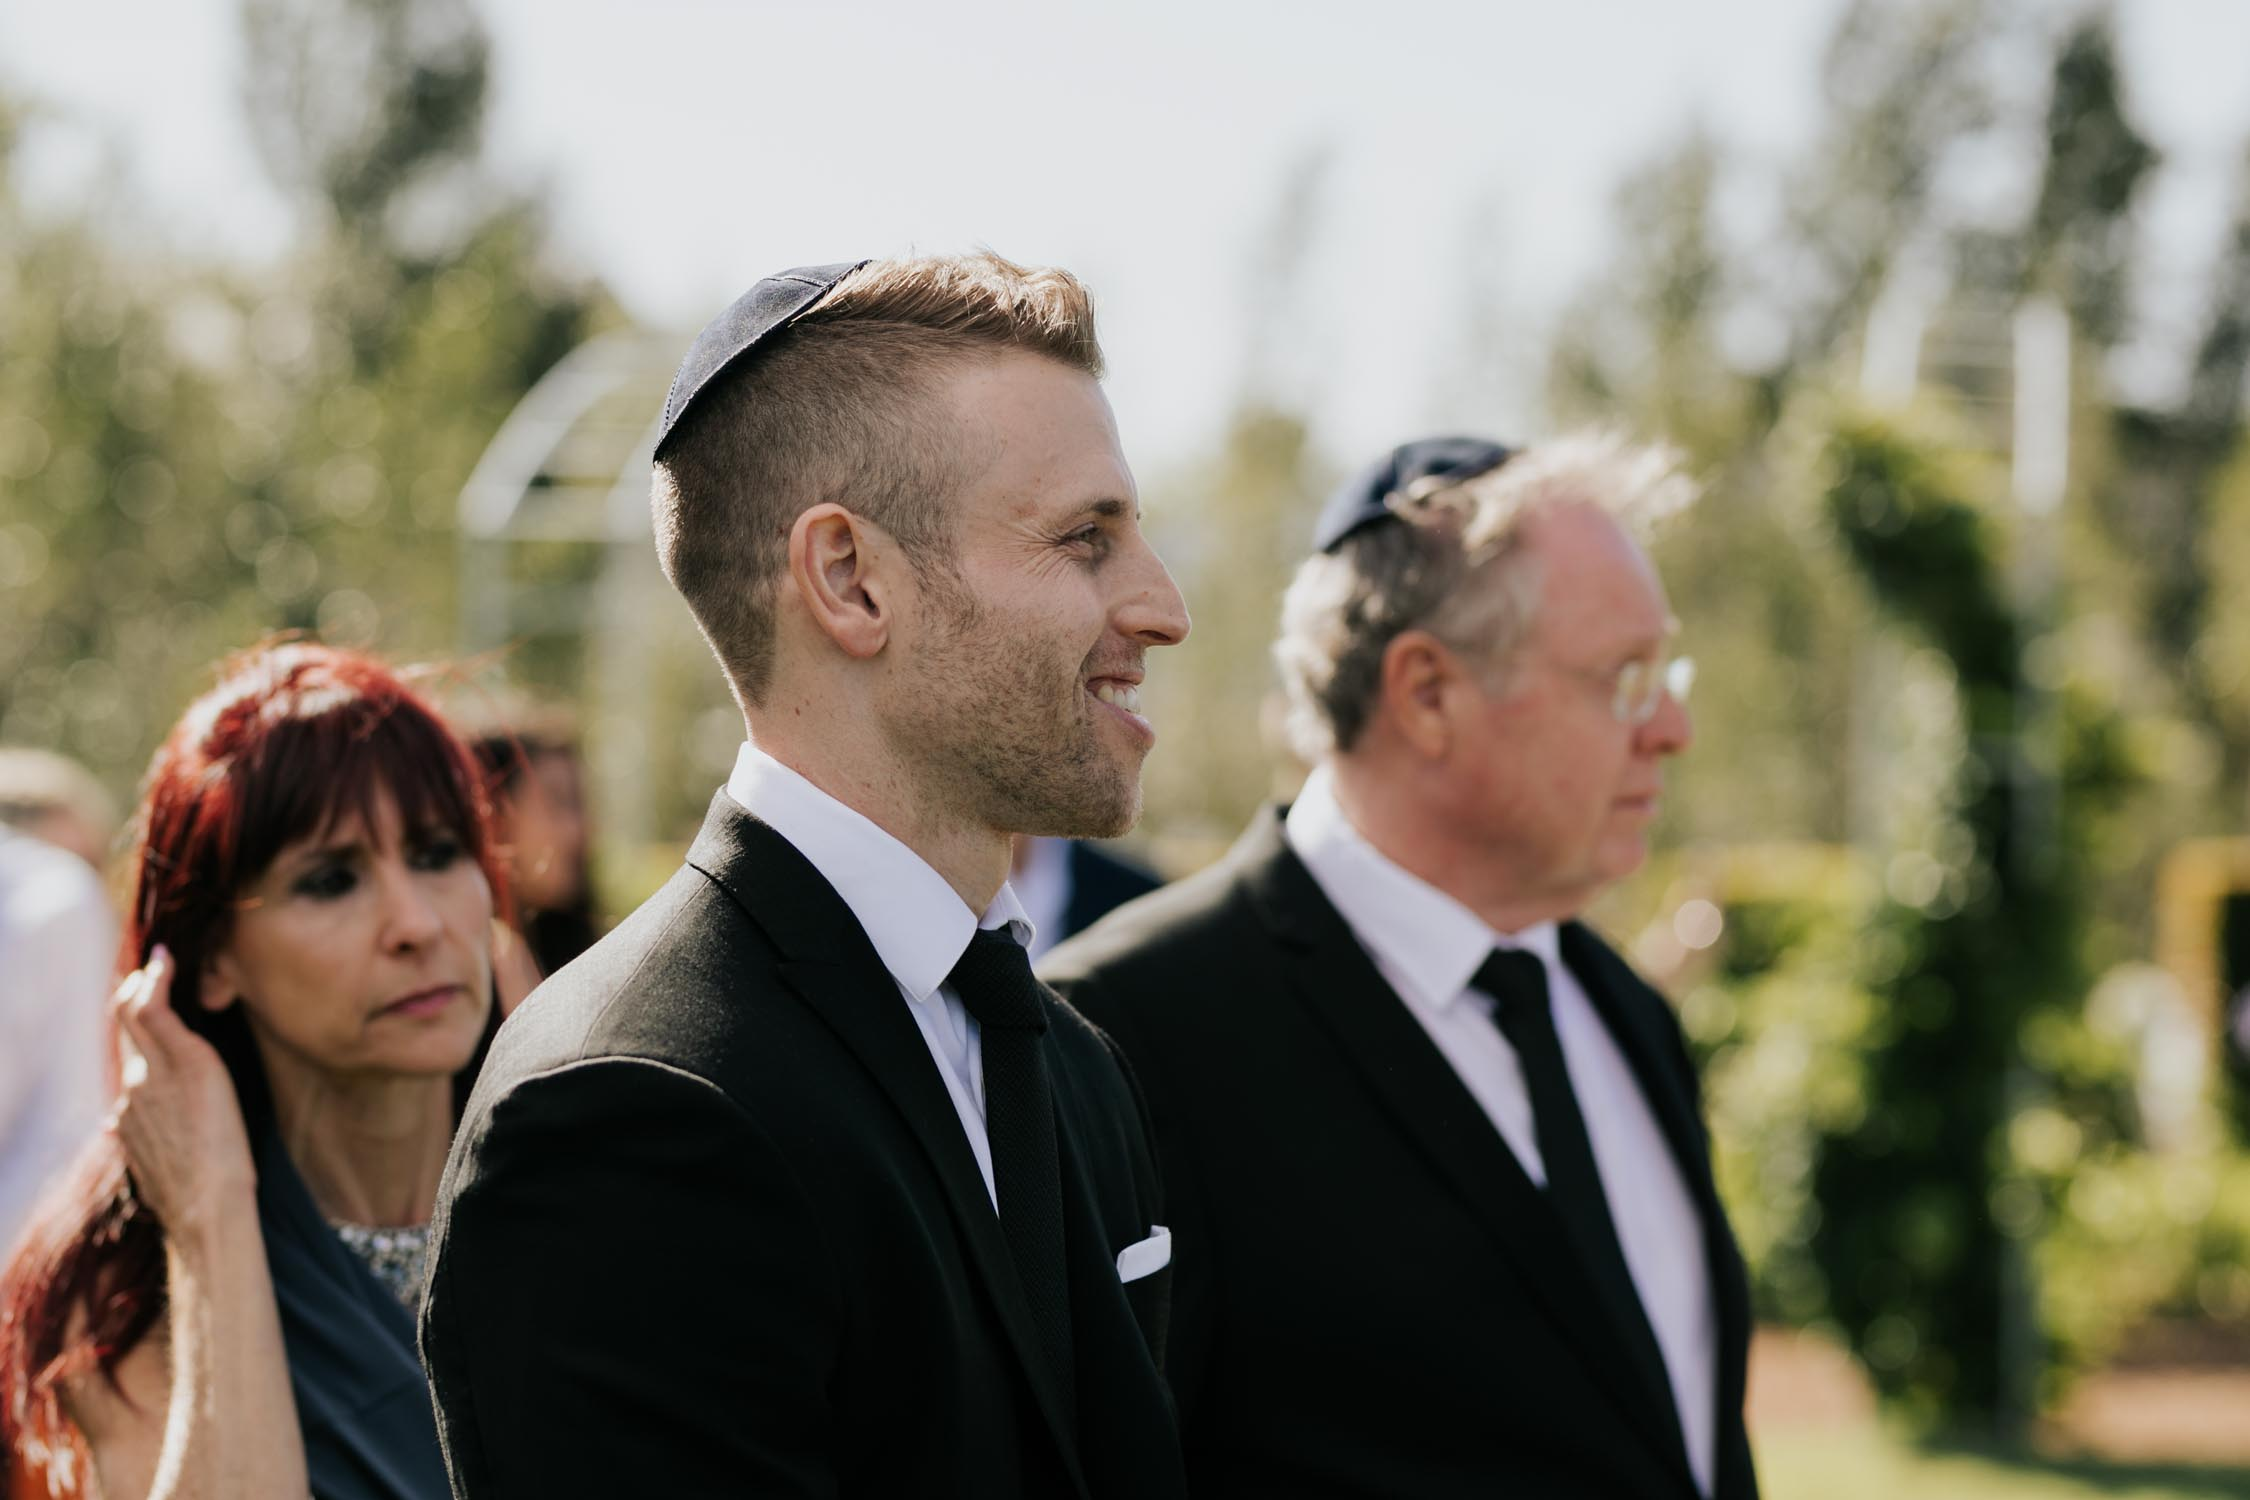 Jewish groom watches bride walk down the aisle